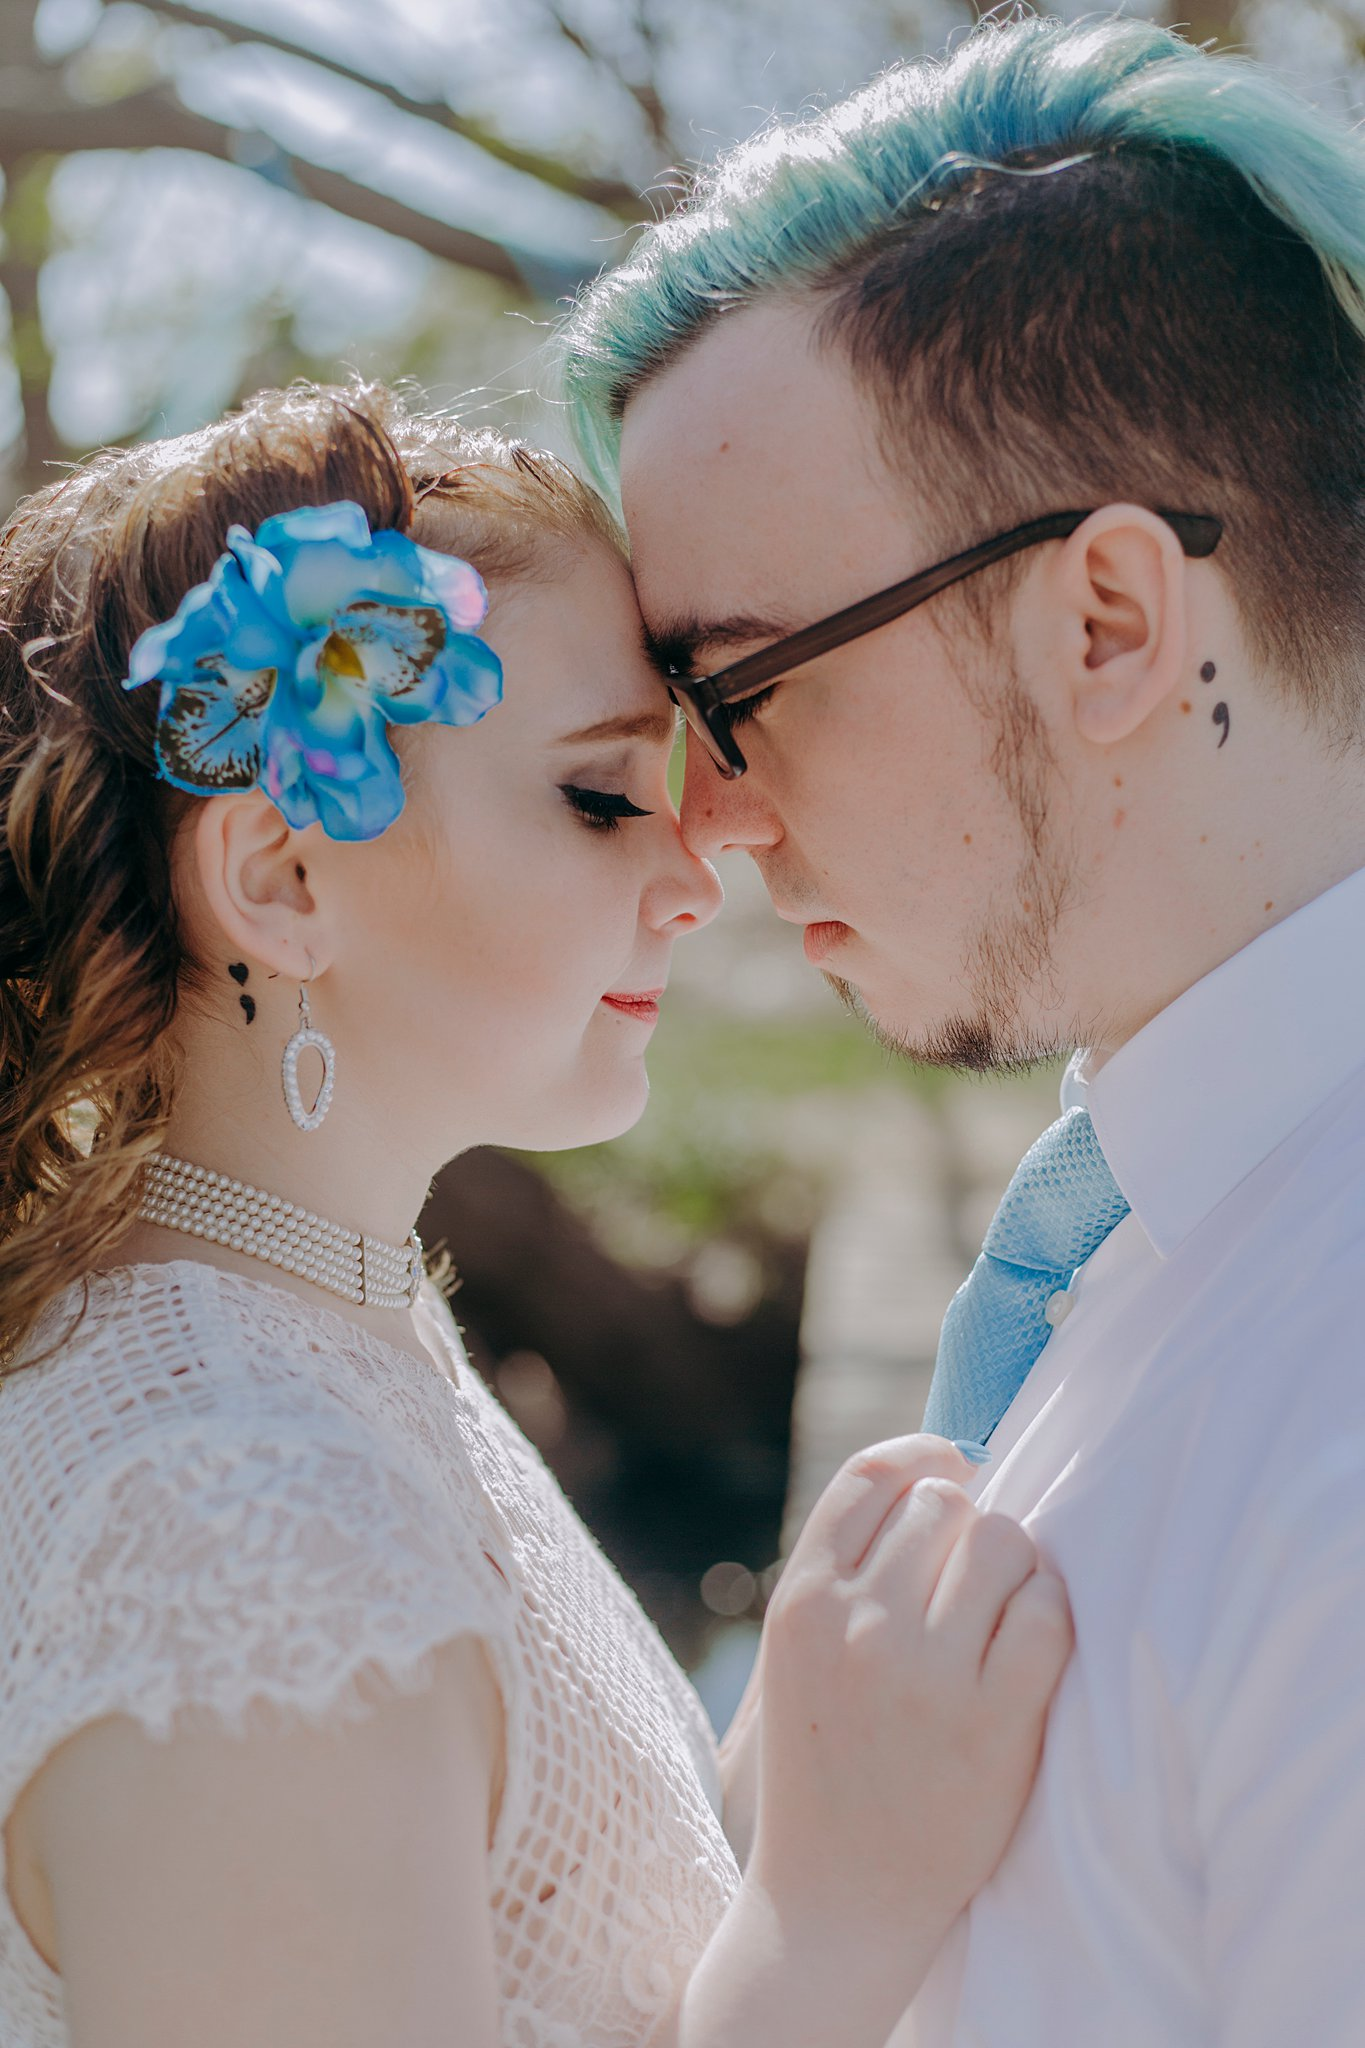 A recently eloped couple puts their foreheads together, closing their eyes and taking in the moment